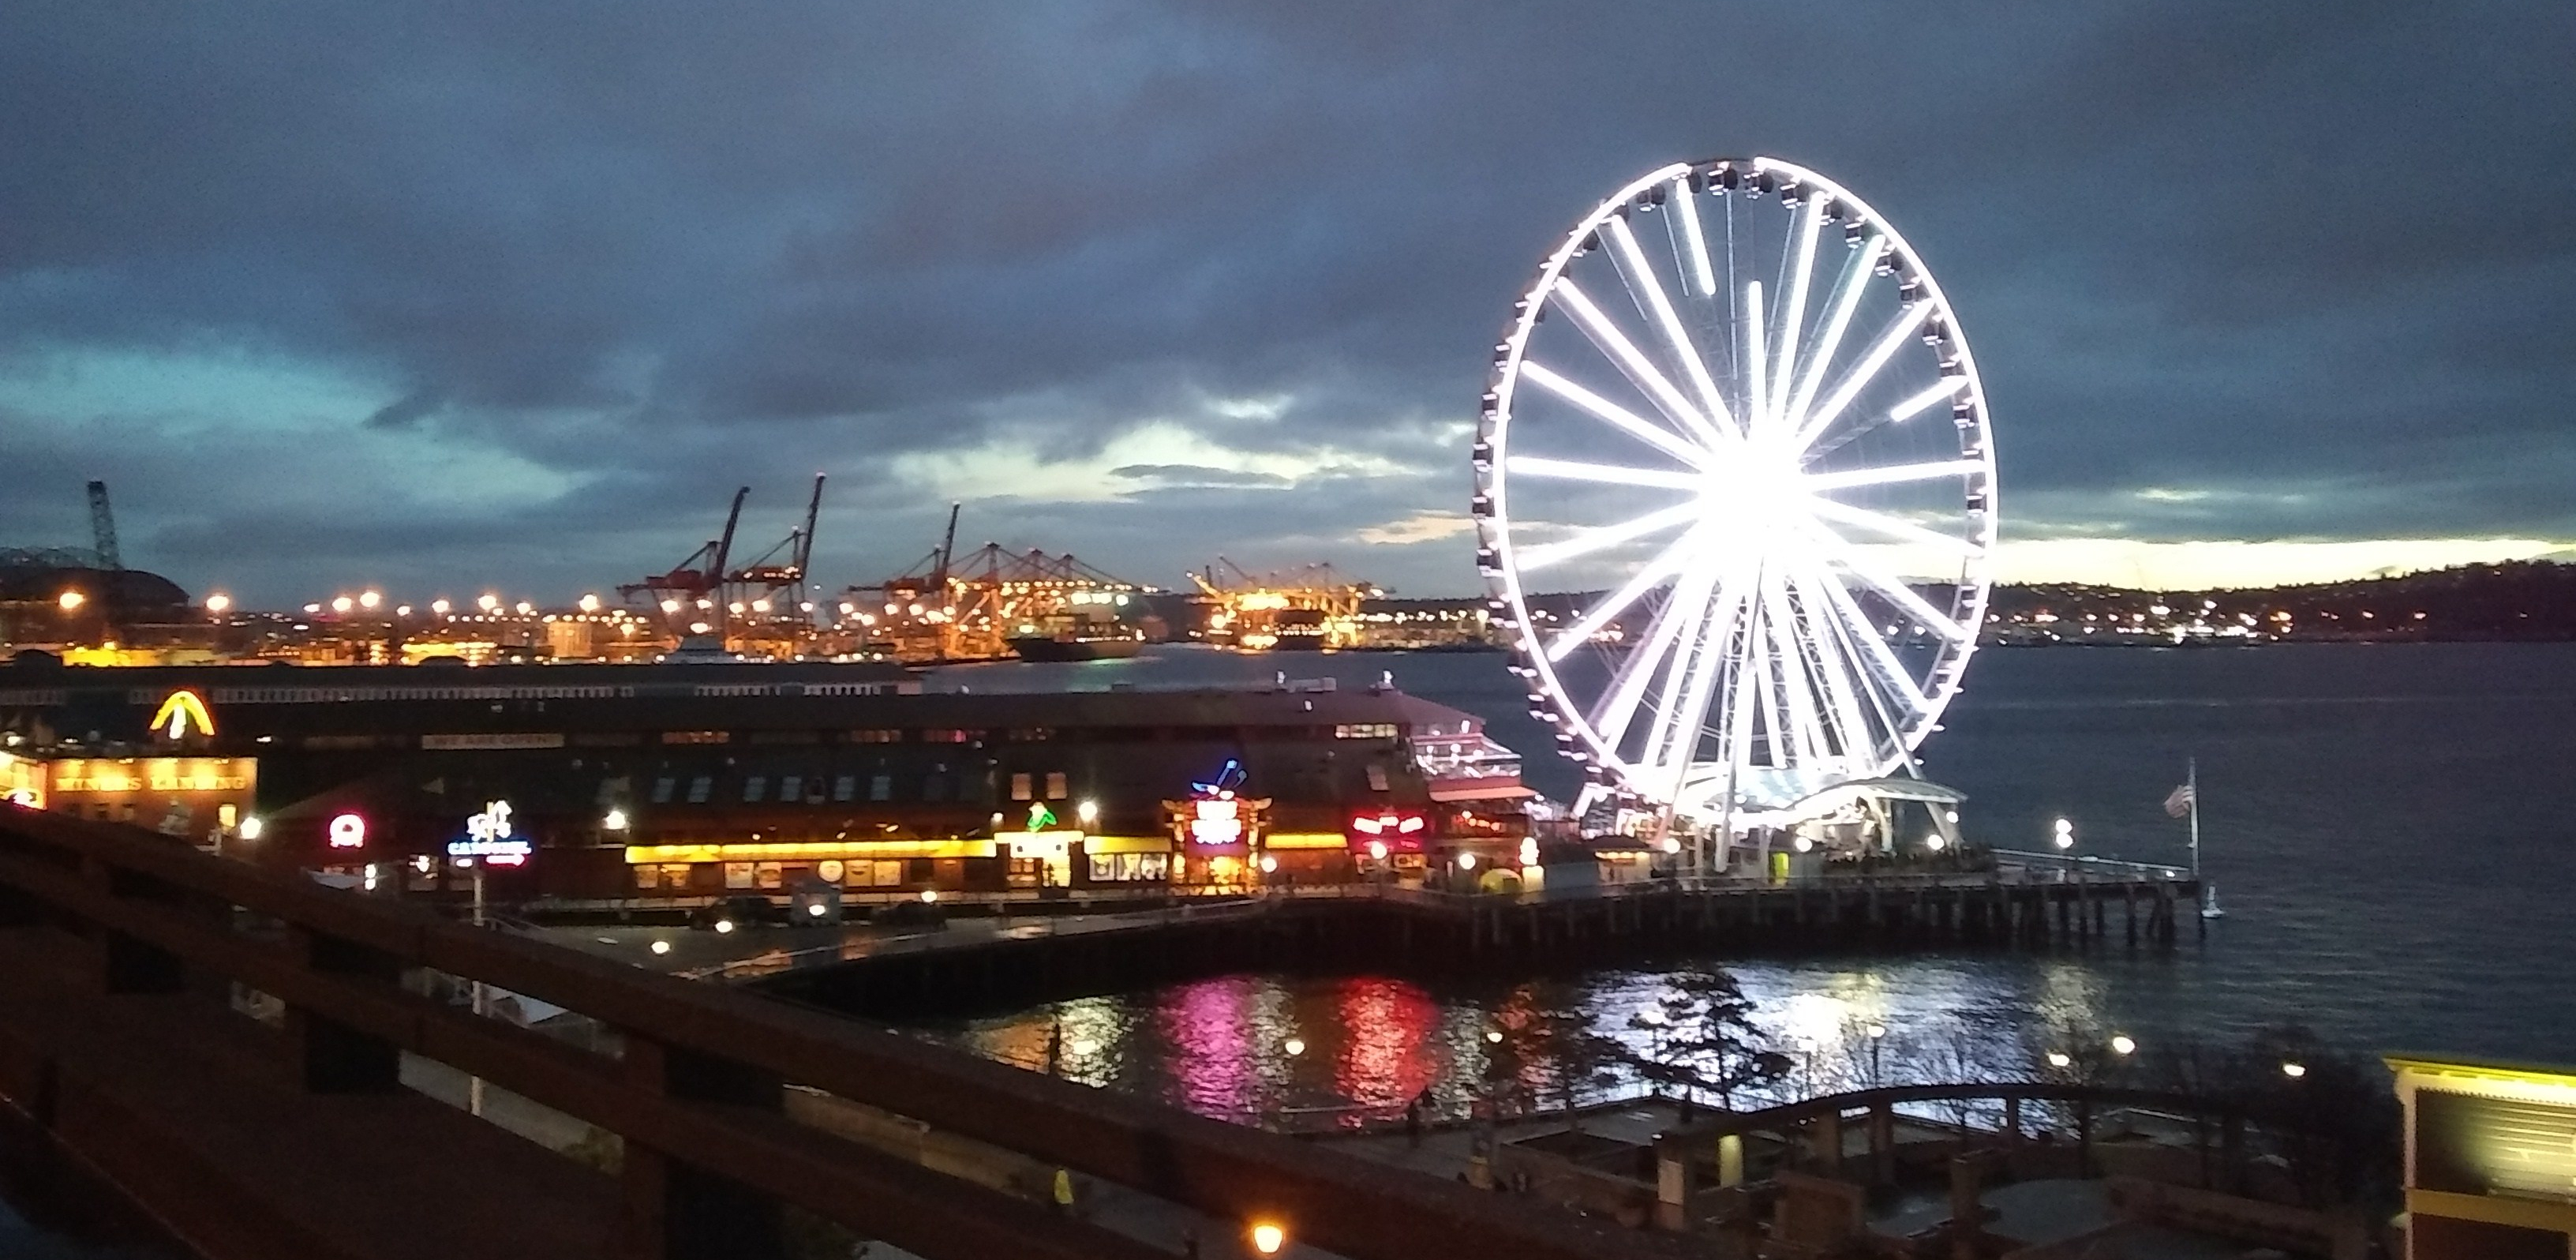 View of the Seattle docs and ferris wheel